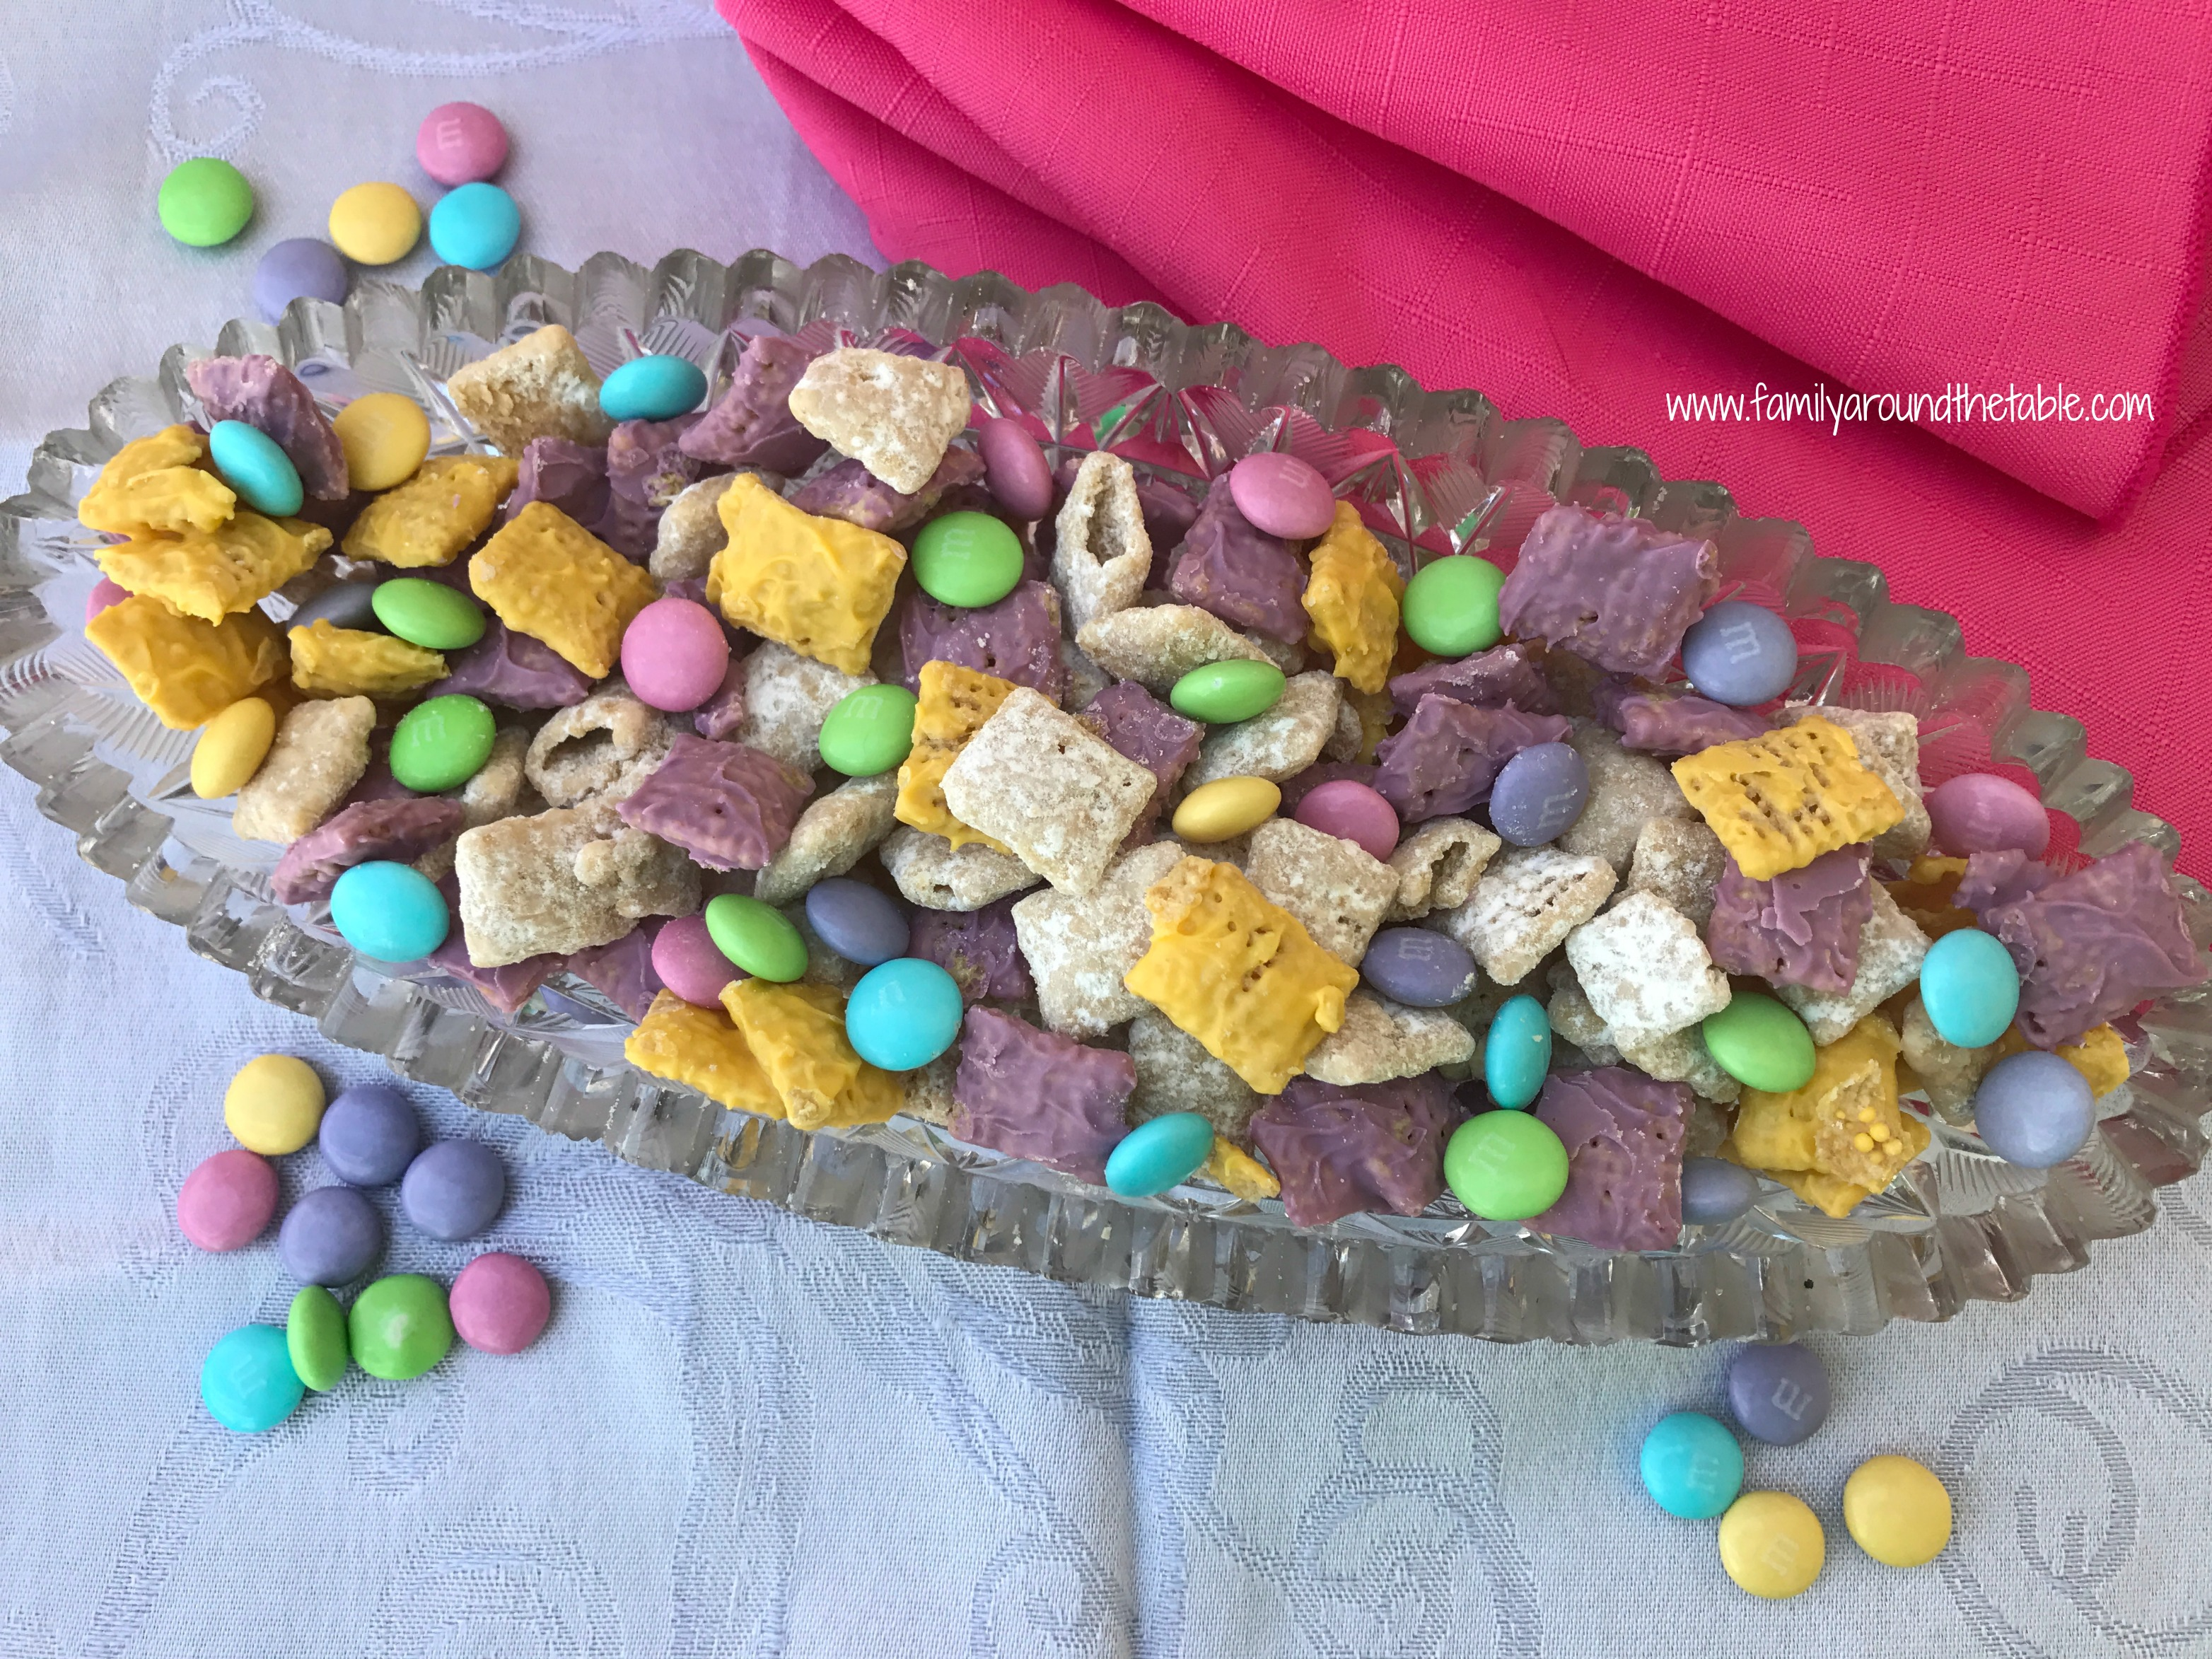 Overhead photo of Easter Muddy Buddies in a glass serving dish with a pink cloth next to it.